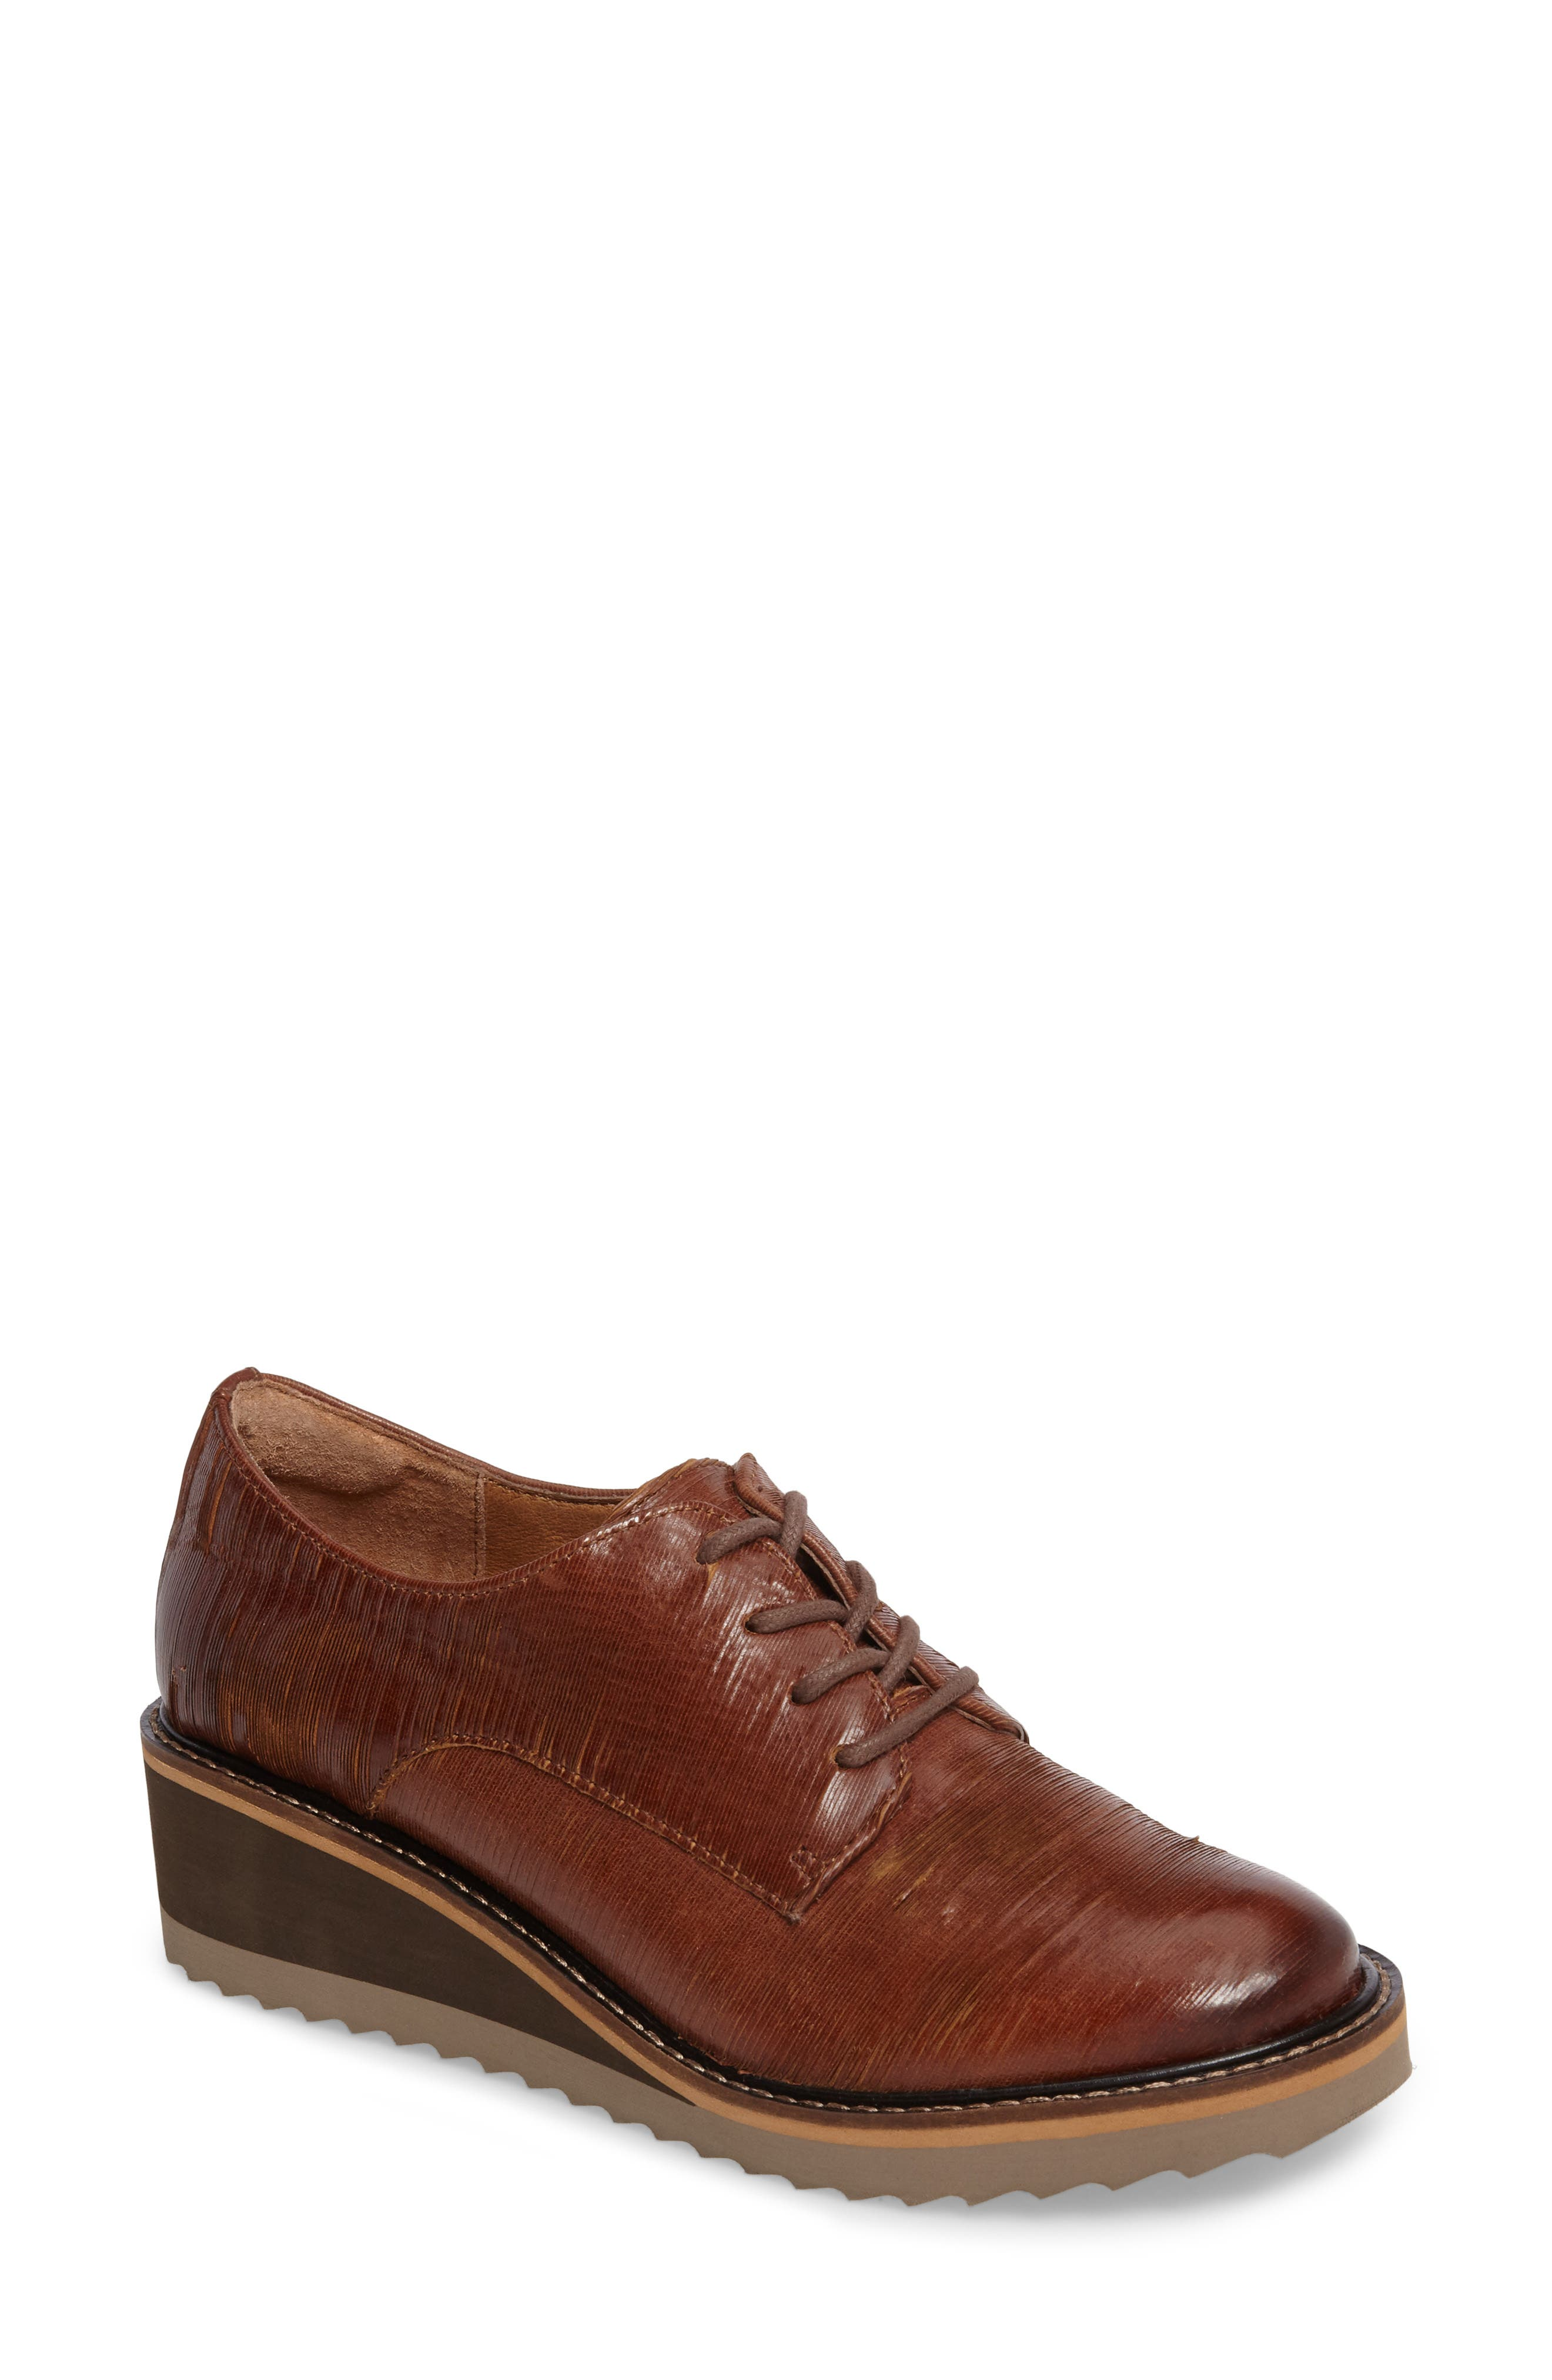 Salerno Oxford,                             Main thumbnail 1, color,                             WHISKEY SUEDE